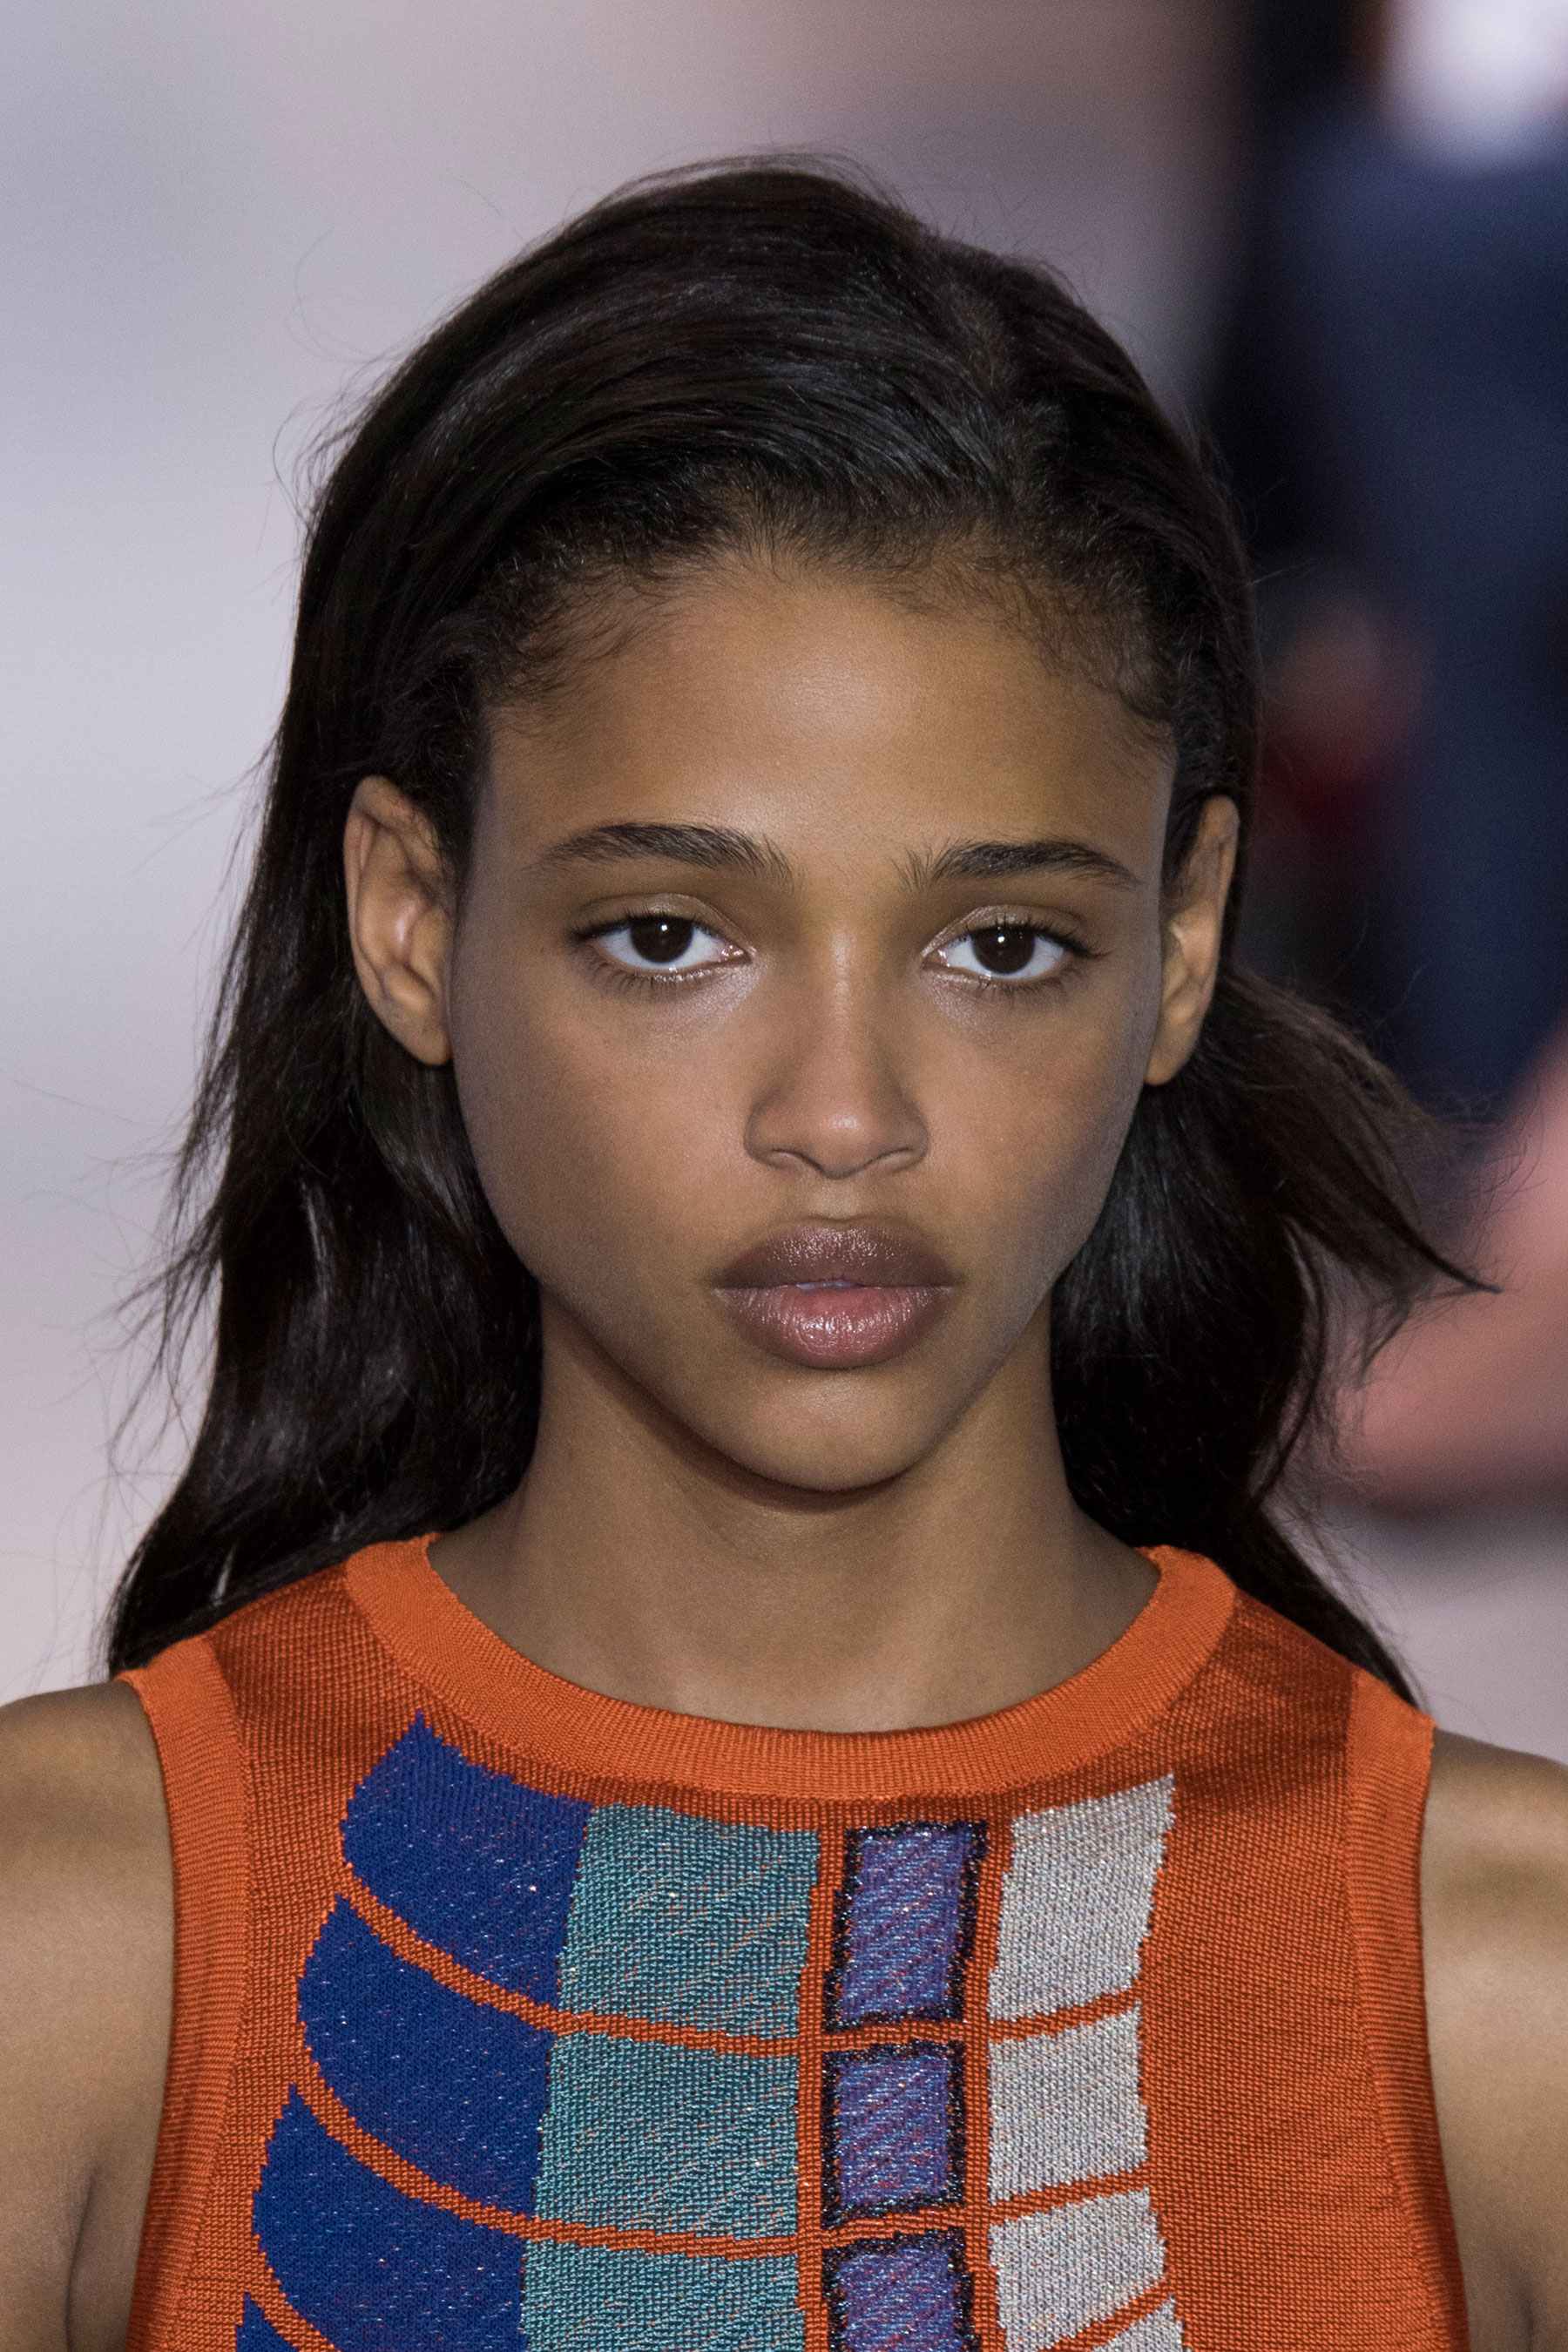 Paco-Rabanne-spring-2016-runway-beauty-fashion-show-the-impression-29